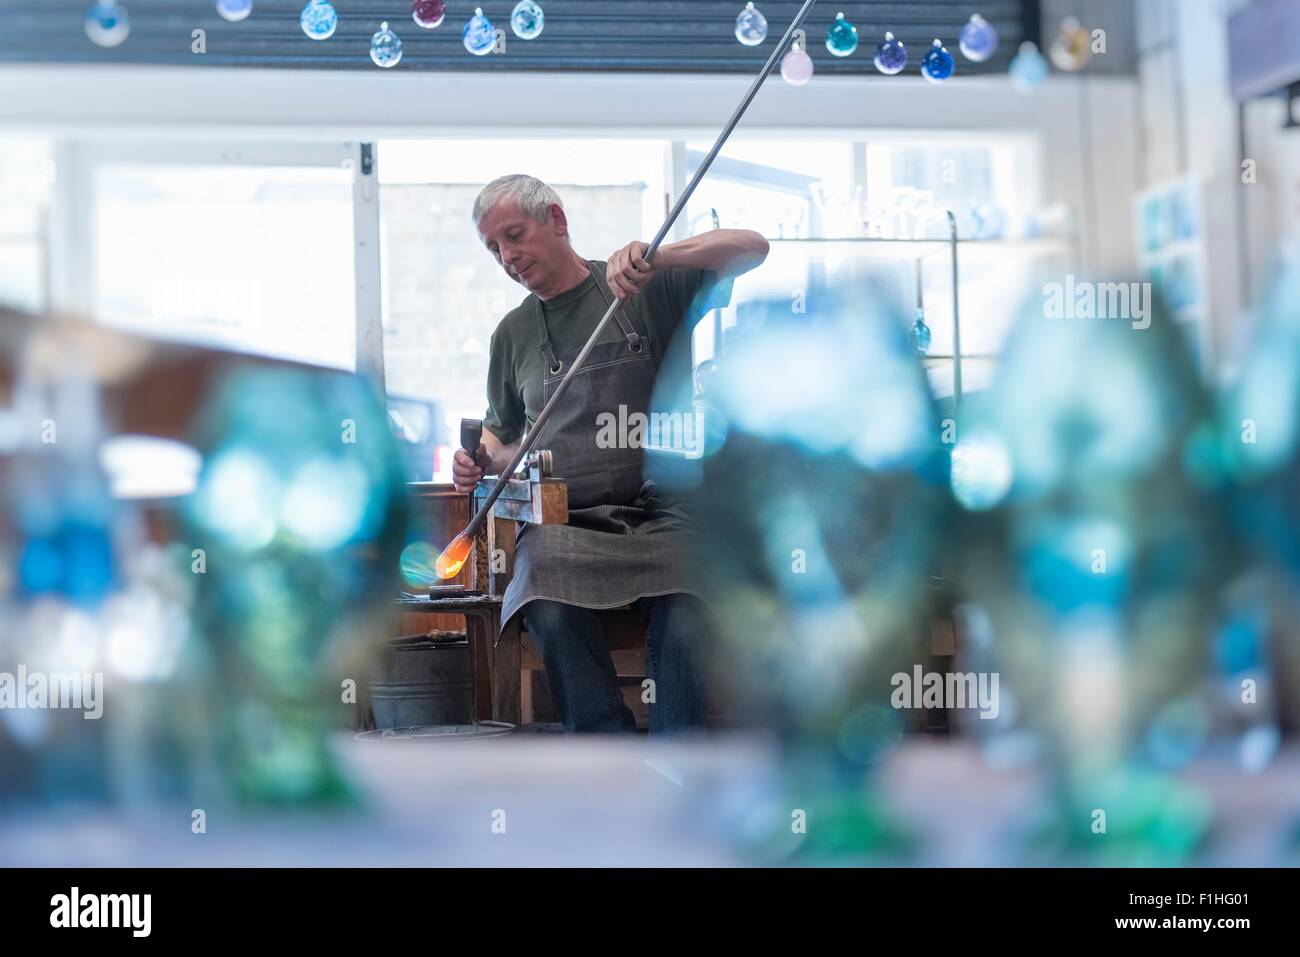 Glassblower with large blob of hot glass - Stock Image